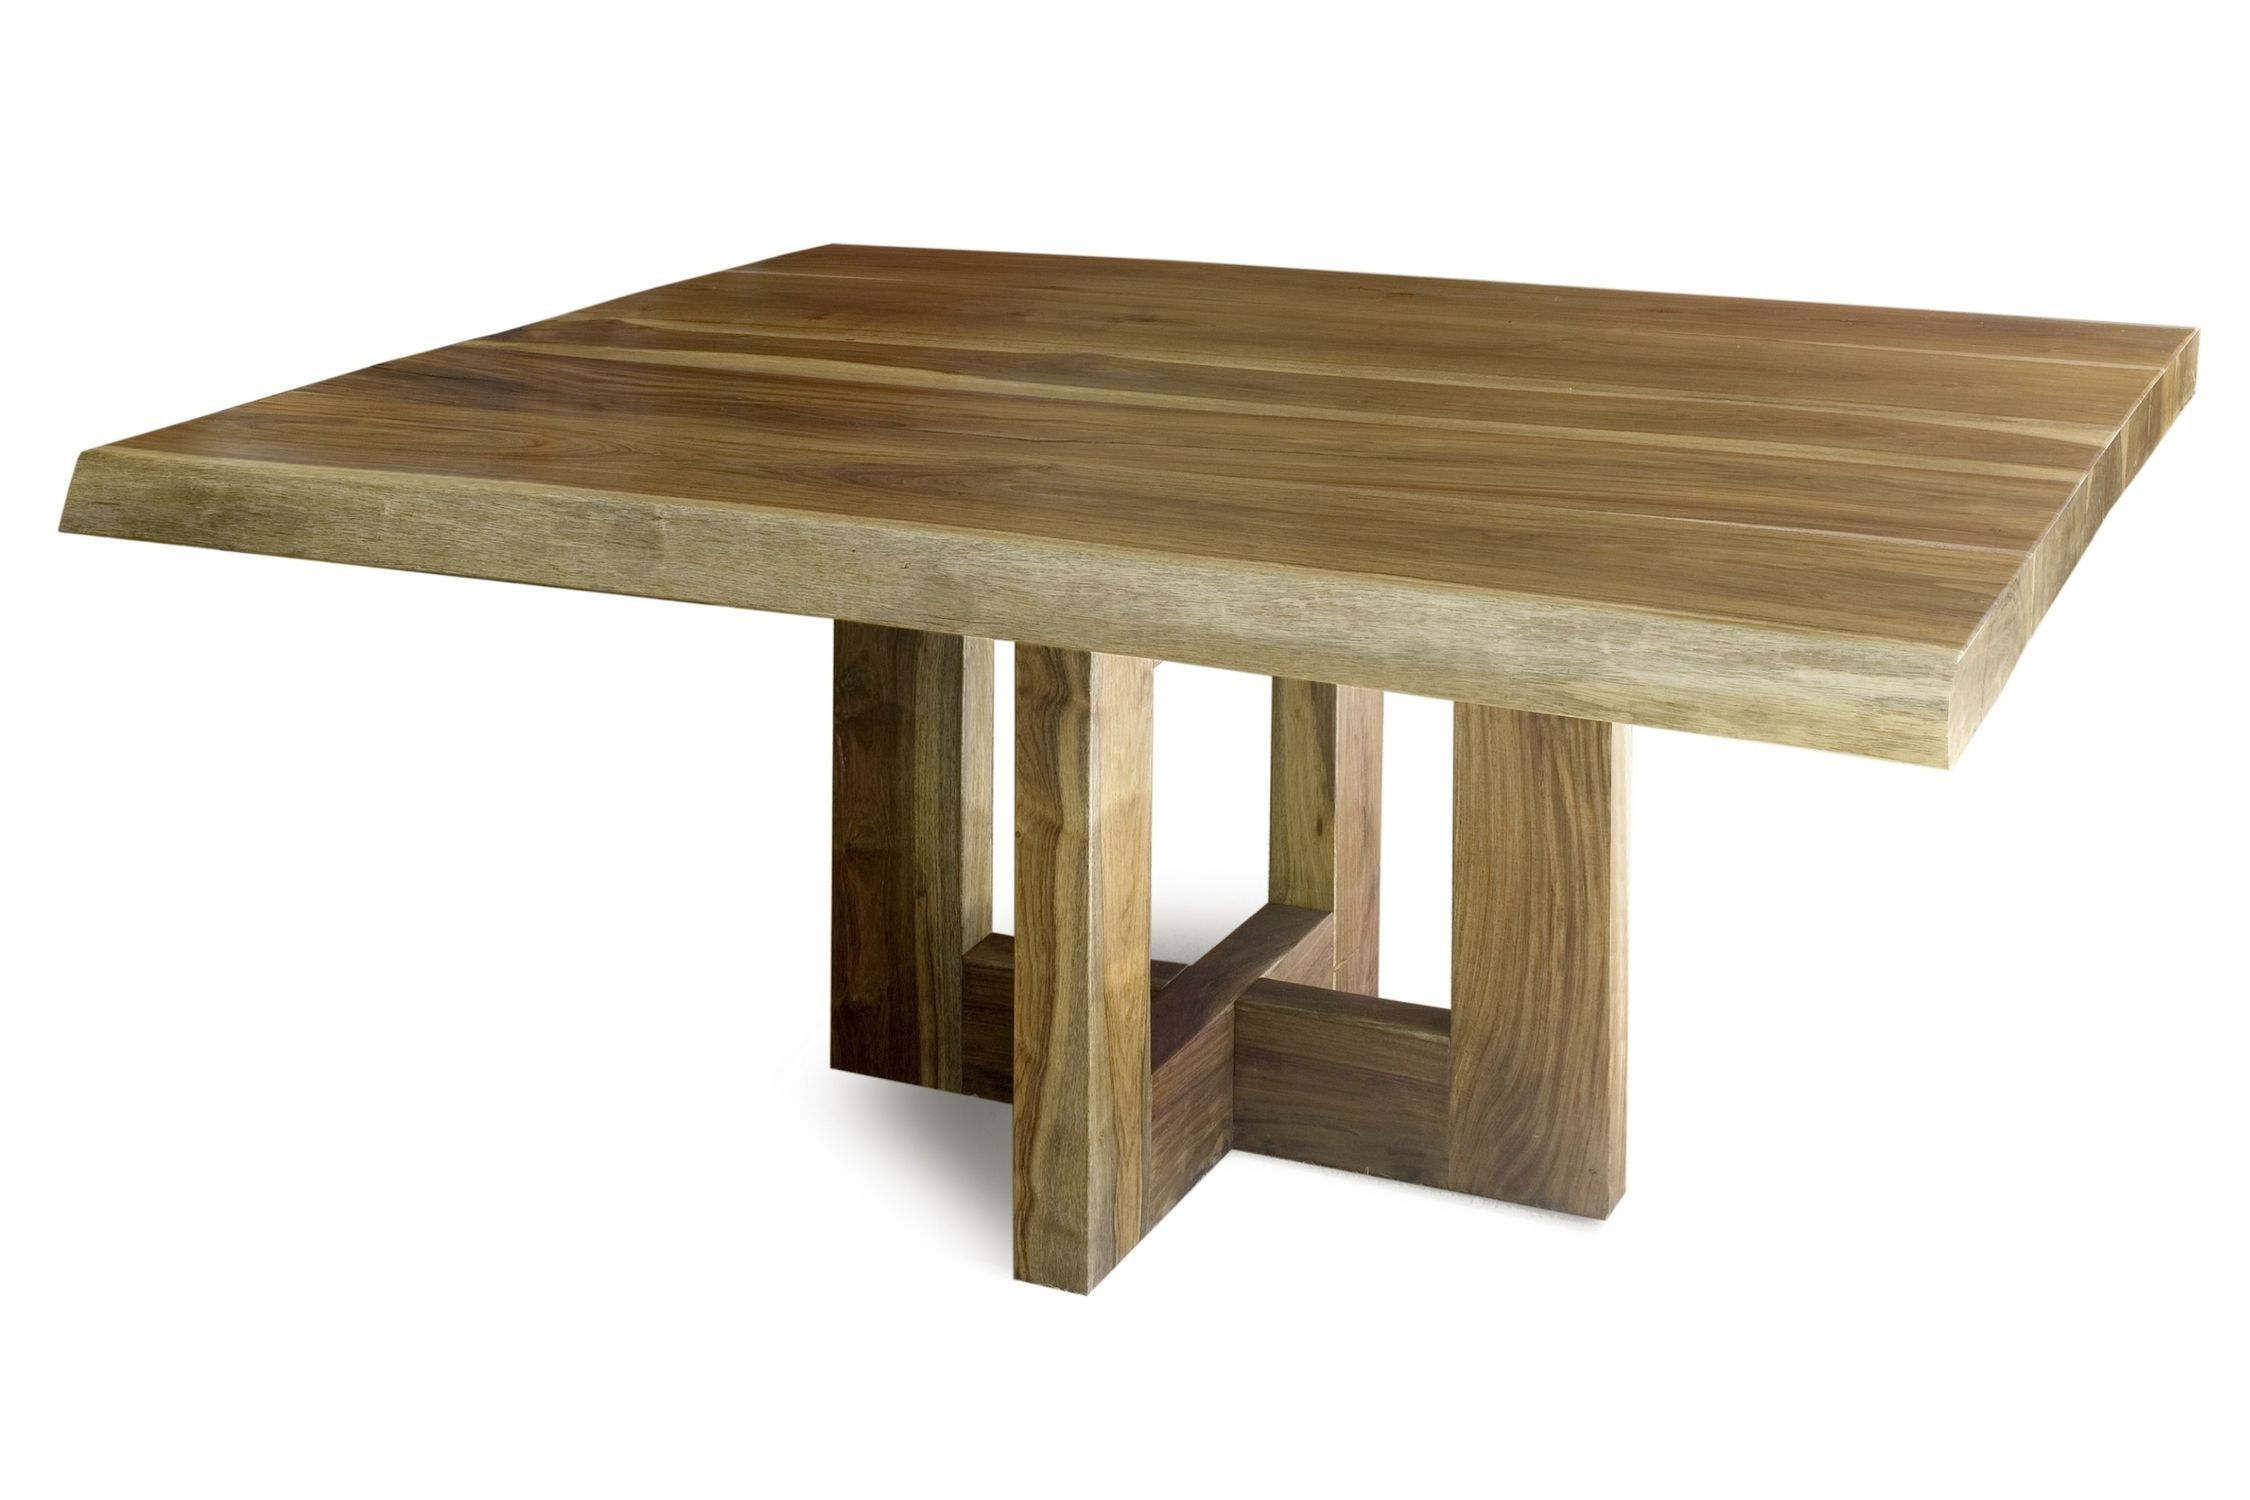 Contemporary rectangle unfinished reclaimed wood table for for Wooden table design